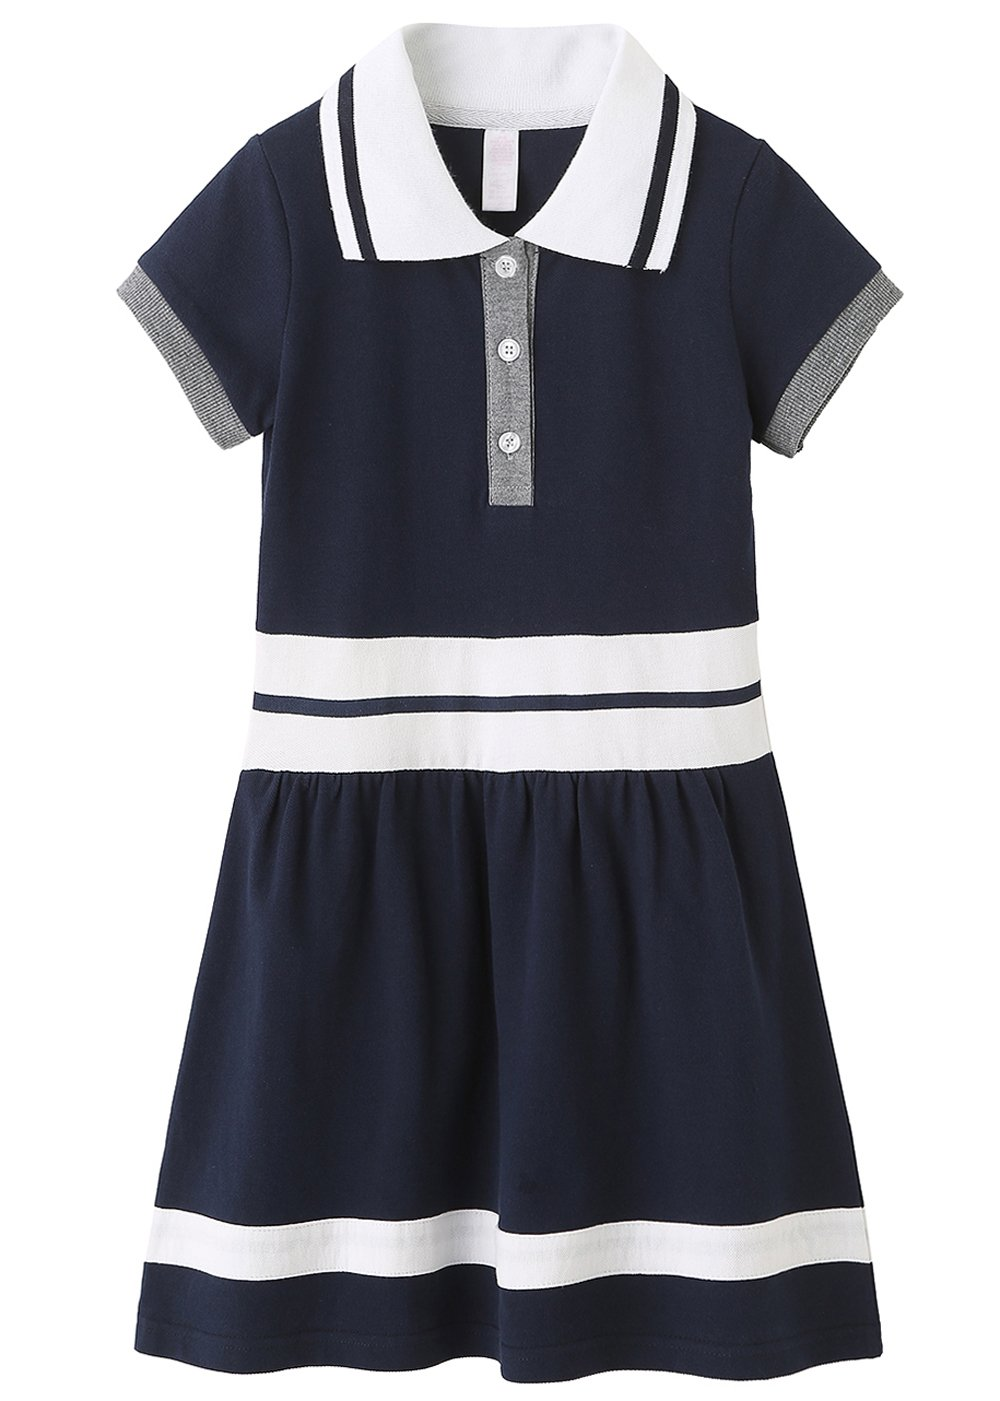 Grandwish School Uniform Girls' Short Sleeve Polo Dress Navy 5/6